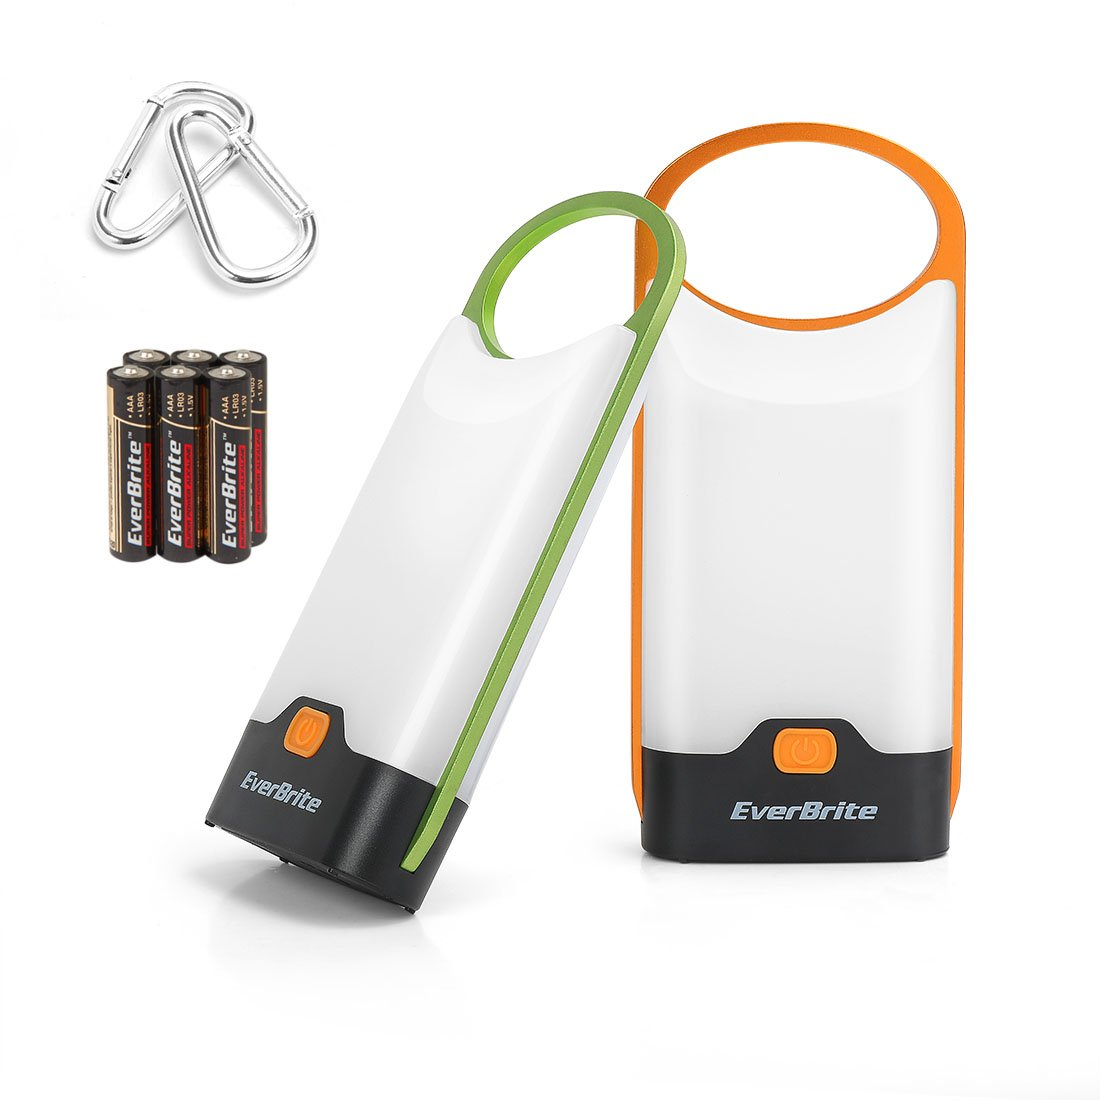 EverBrite Camping Lantern Slim LED Flashlight 2-Pack 150 Lumens with Carabiners Green&Orange for Camping, Emergency, Hurricane, Power Outage 6 AAA Alkaline Batteries Included